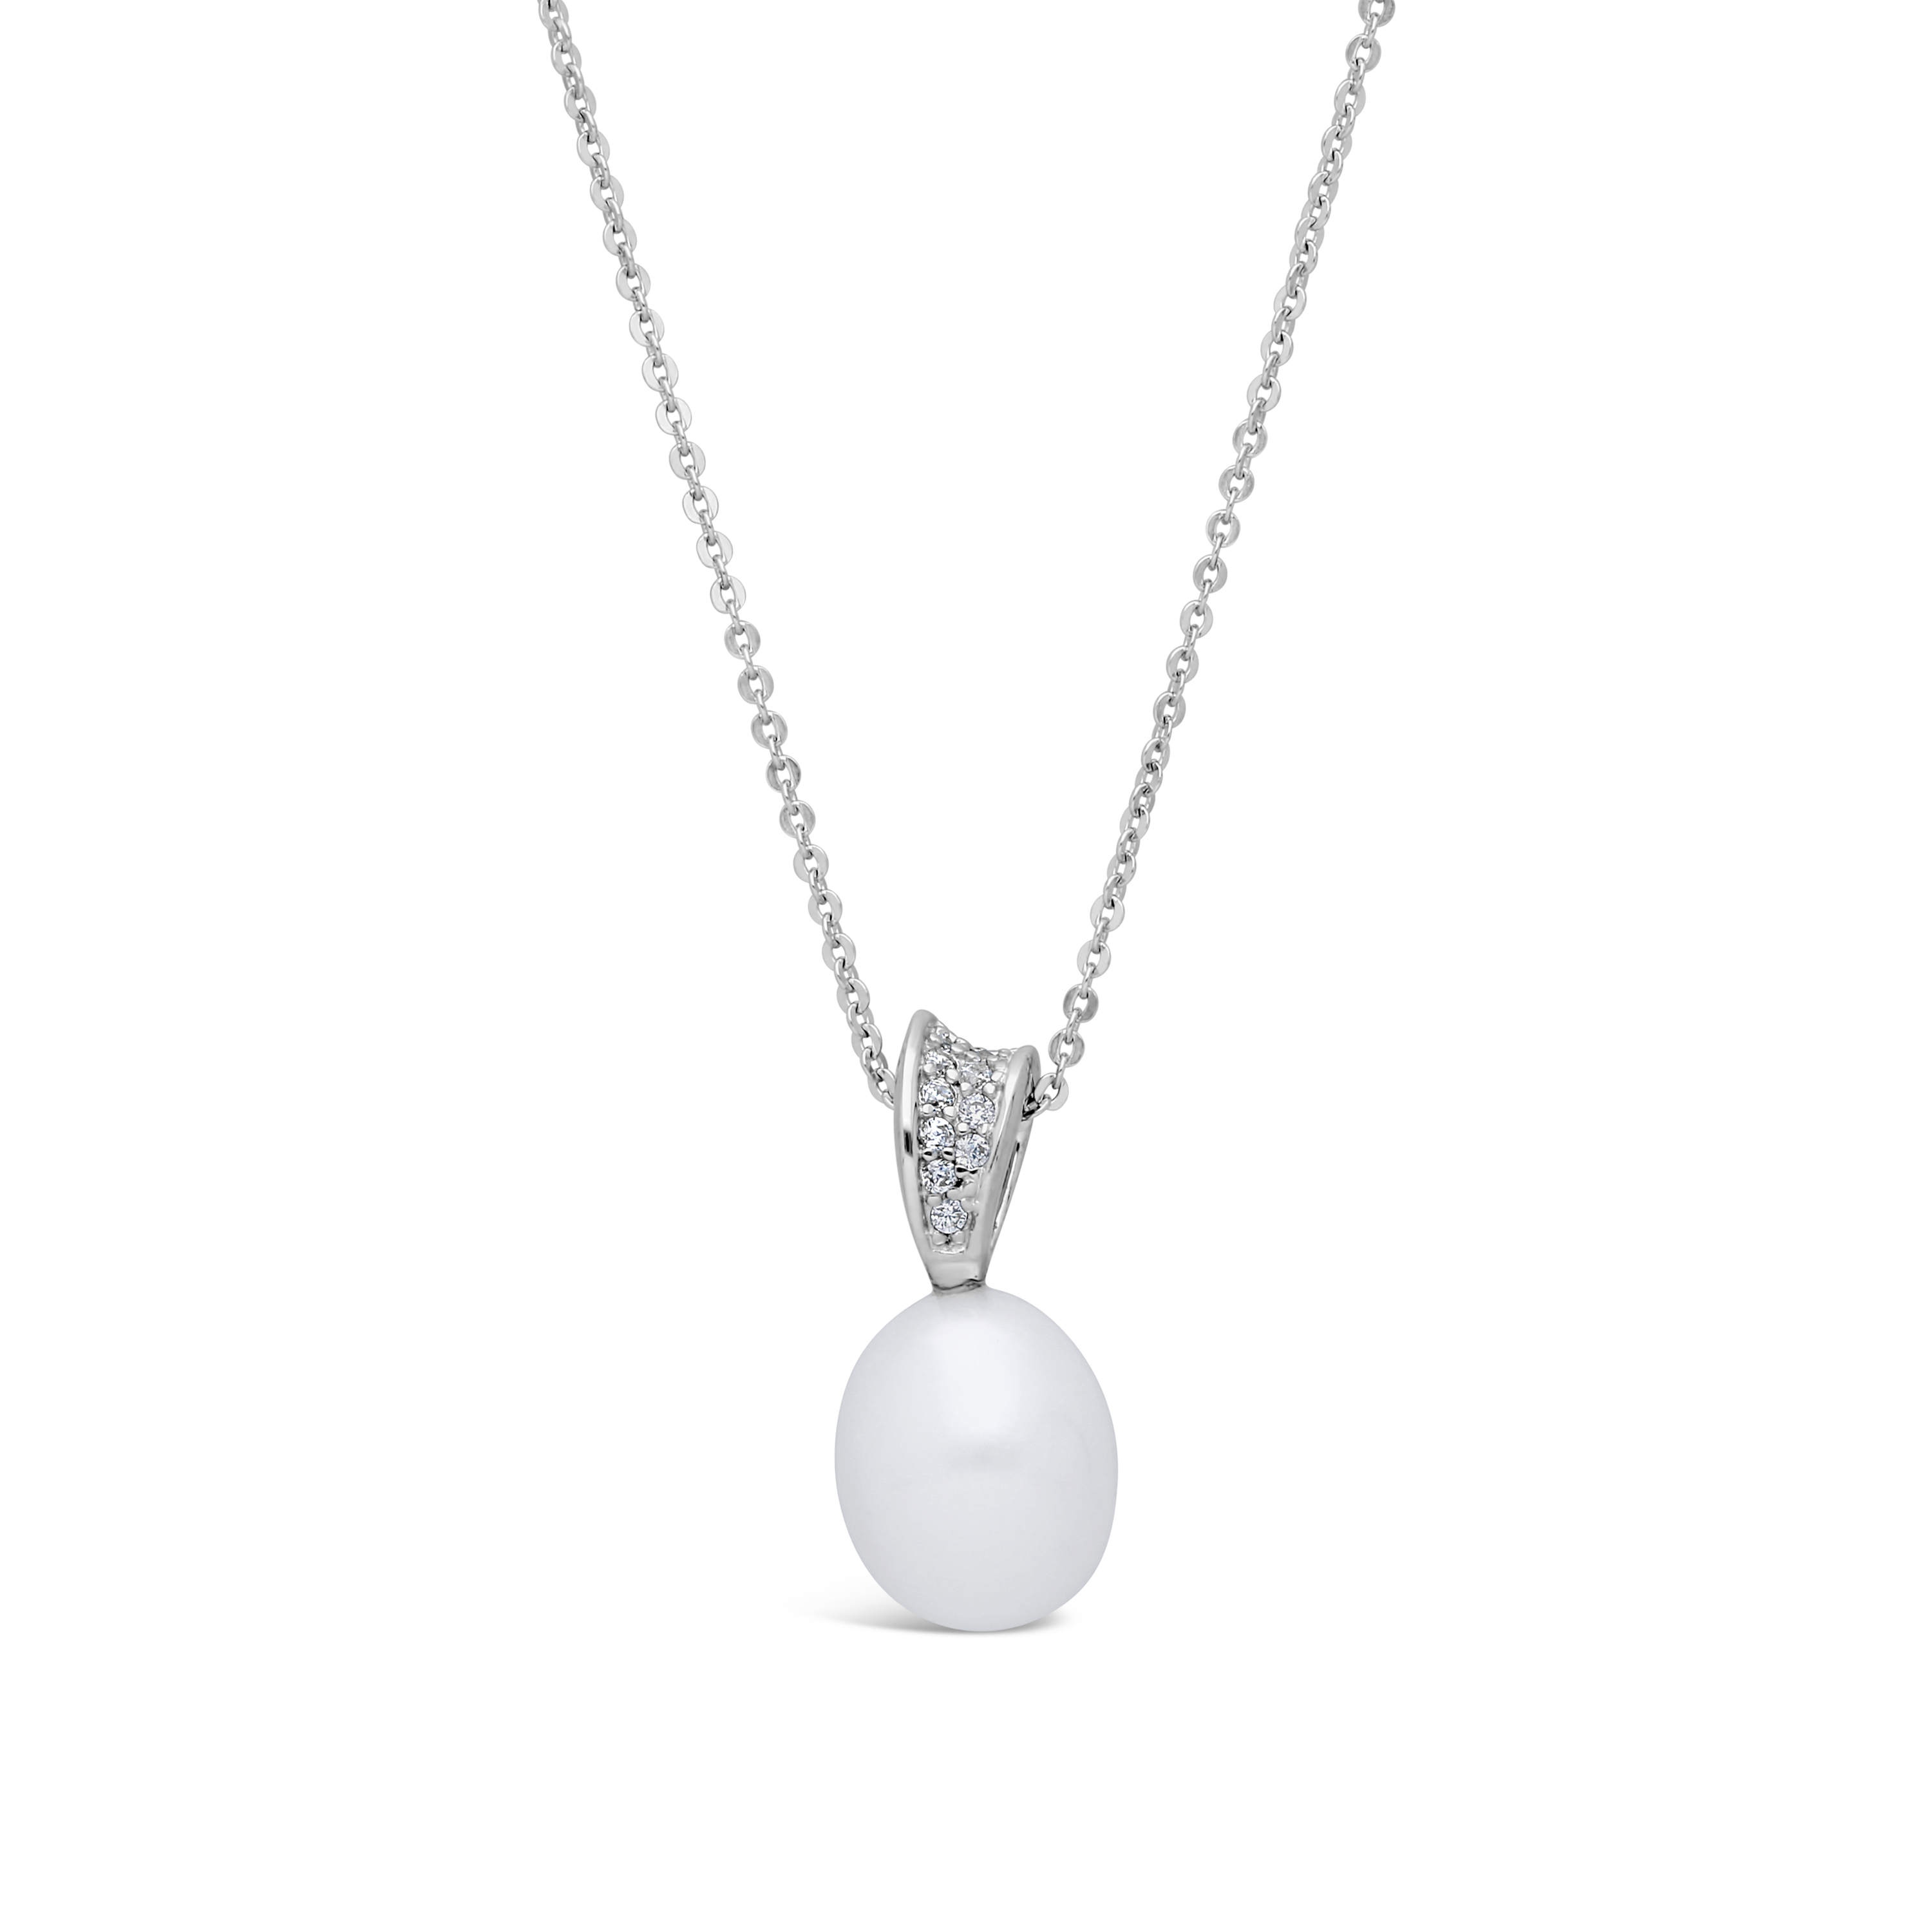 ** NEW ** 9ct White Gold Cubic Zirconia Freshwater Pearl Pendant and Curb Chain